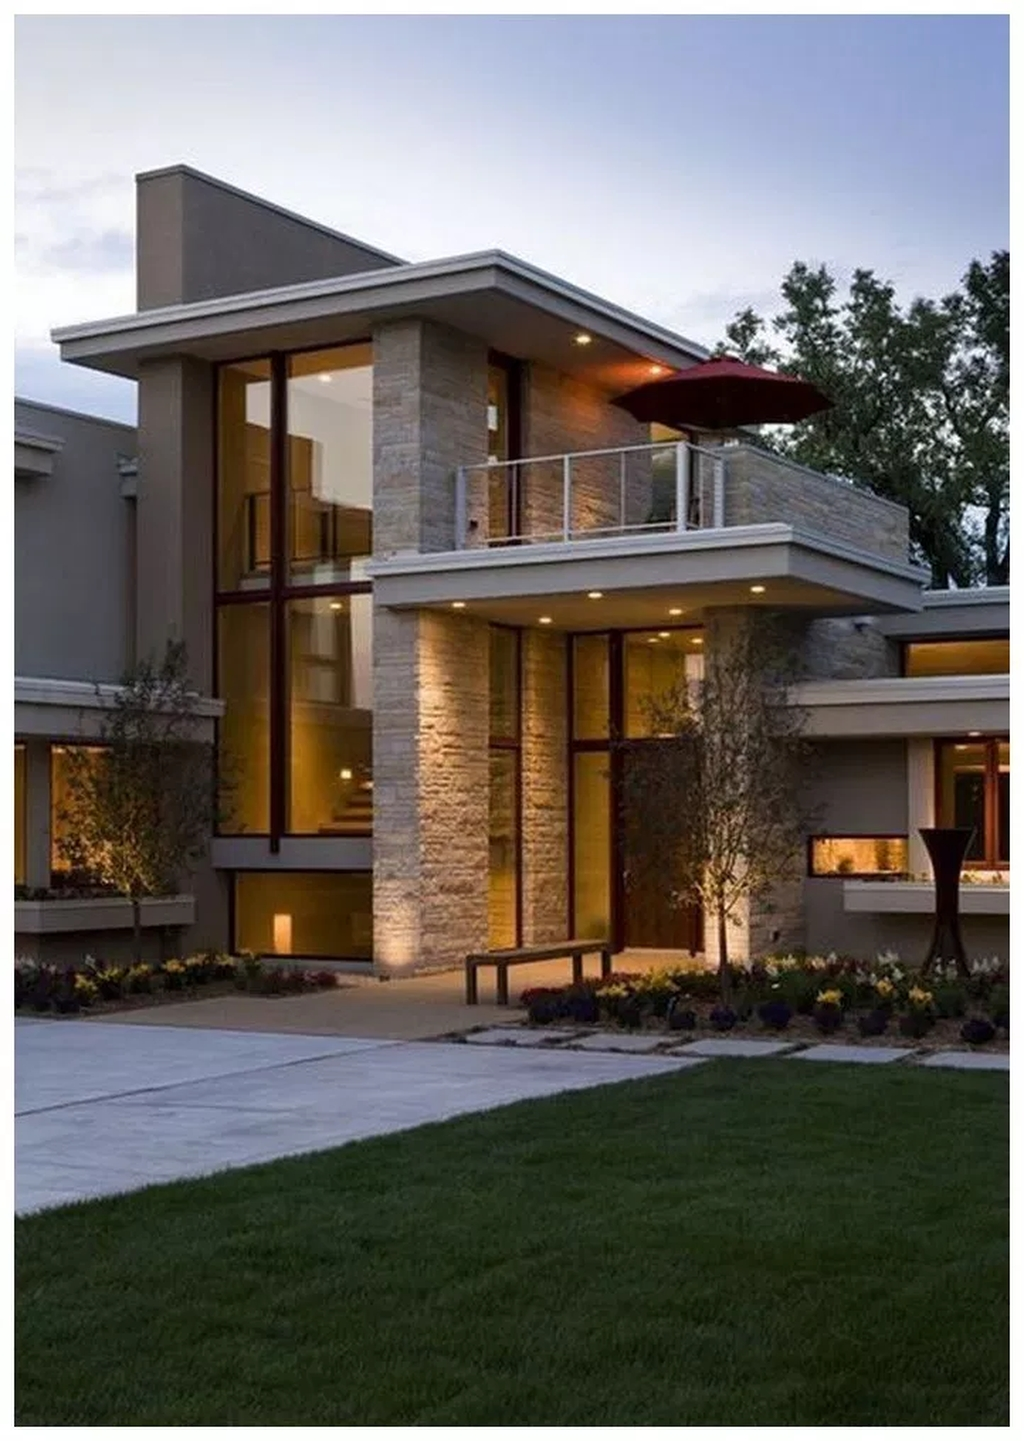 Fascinating Contemporary Houses Design Ideas To Try27